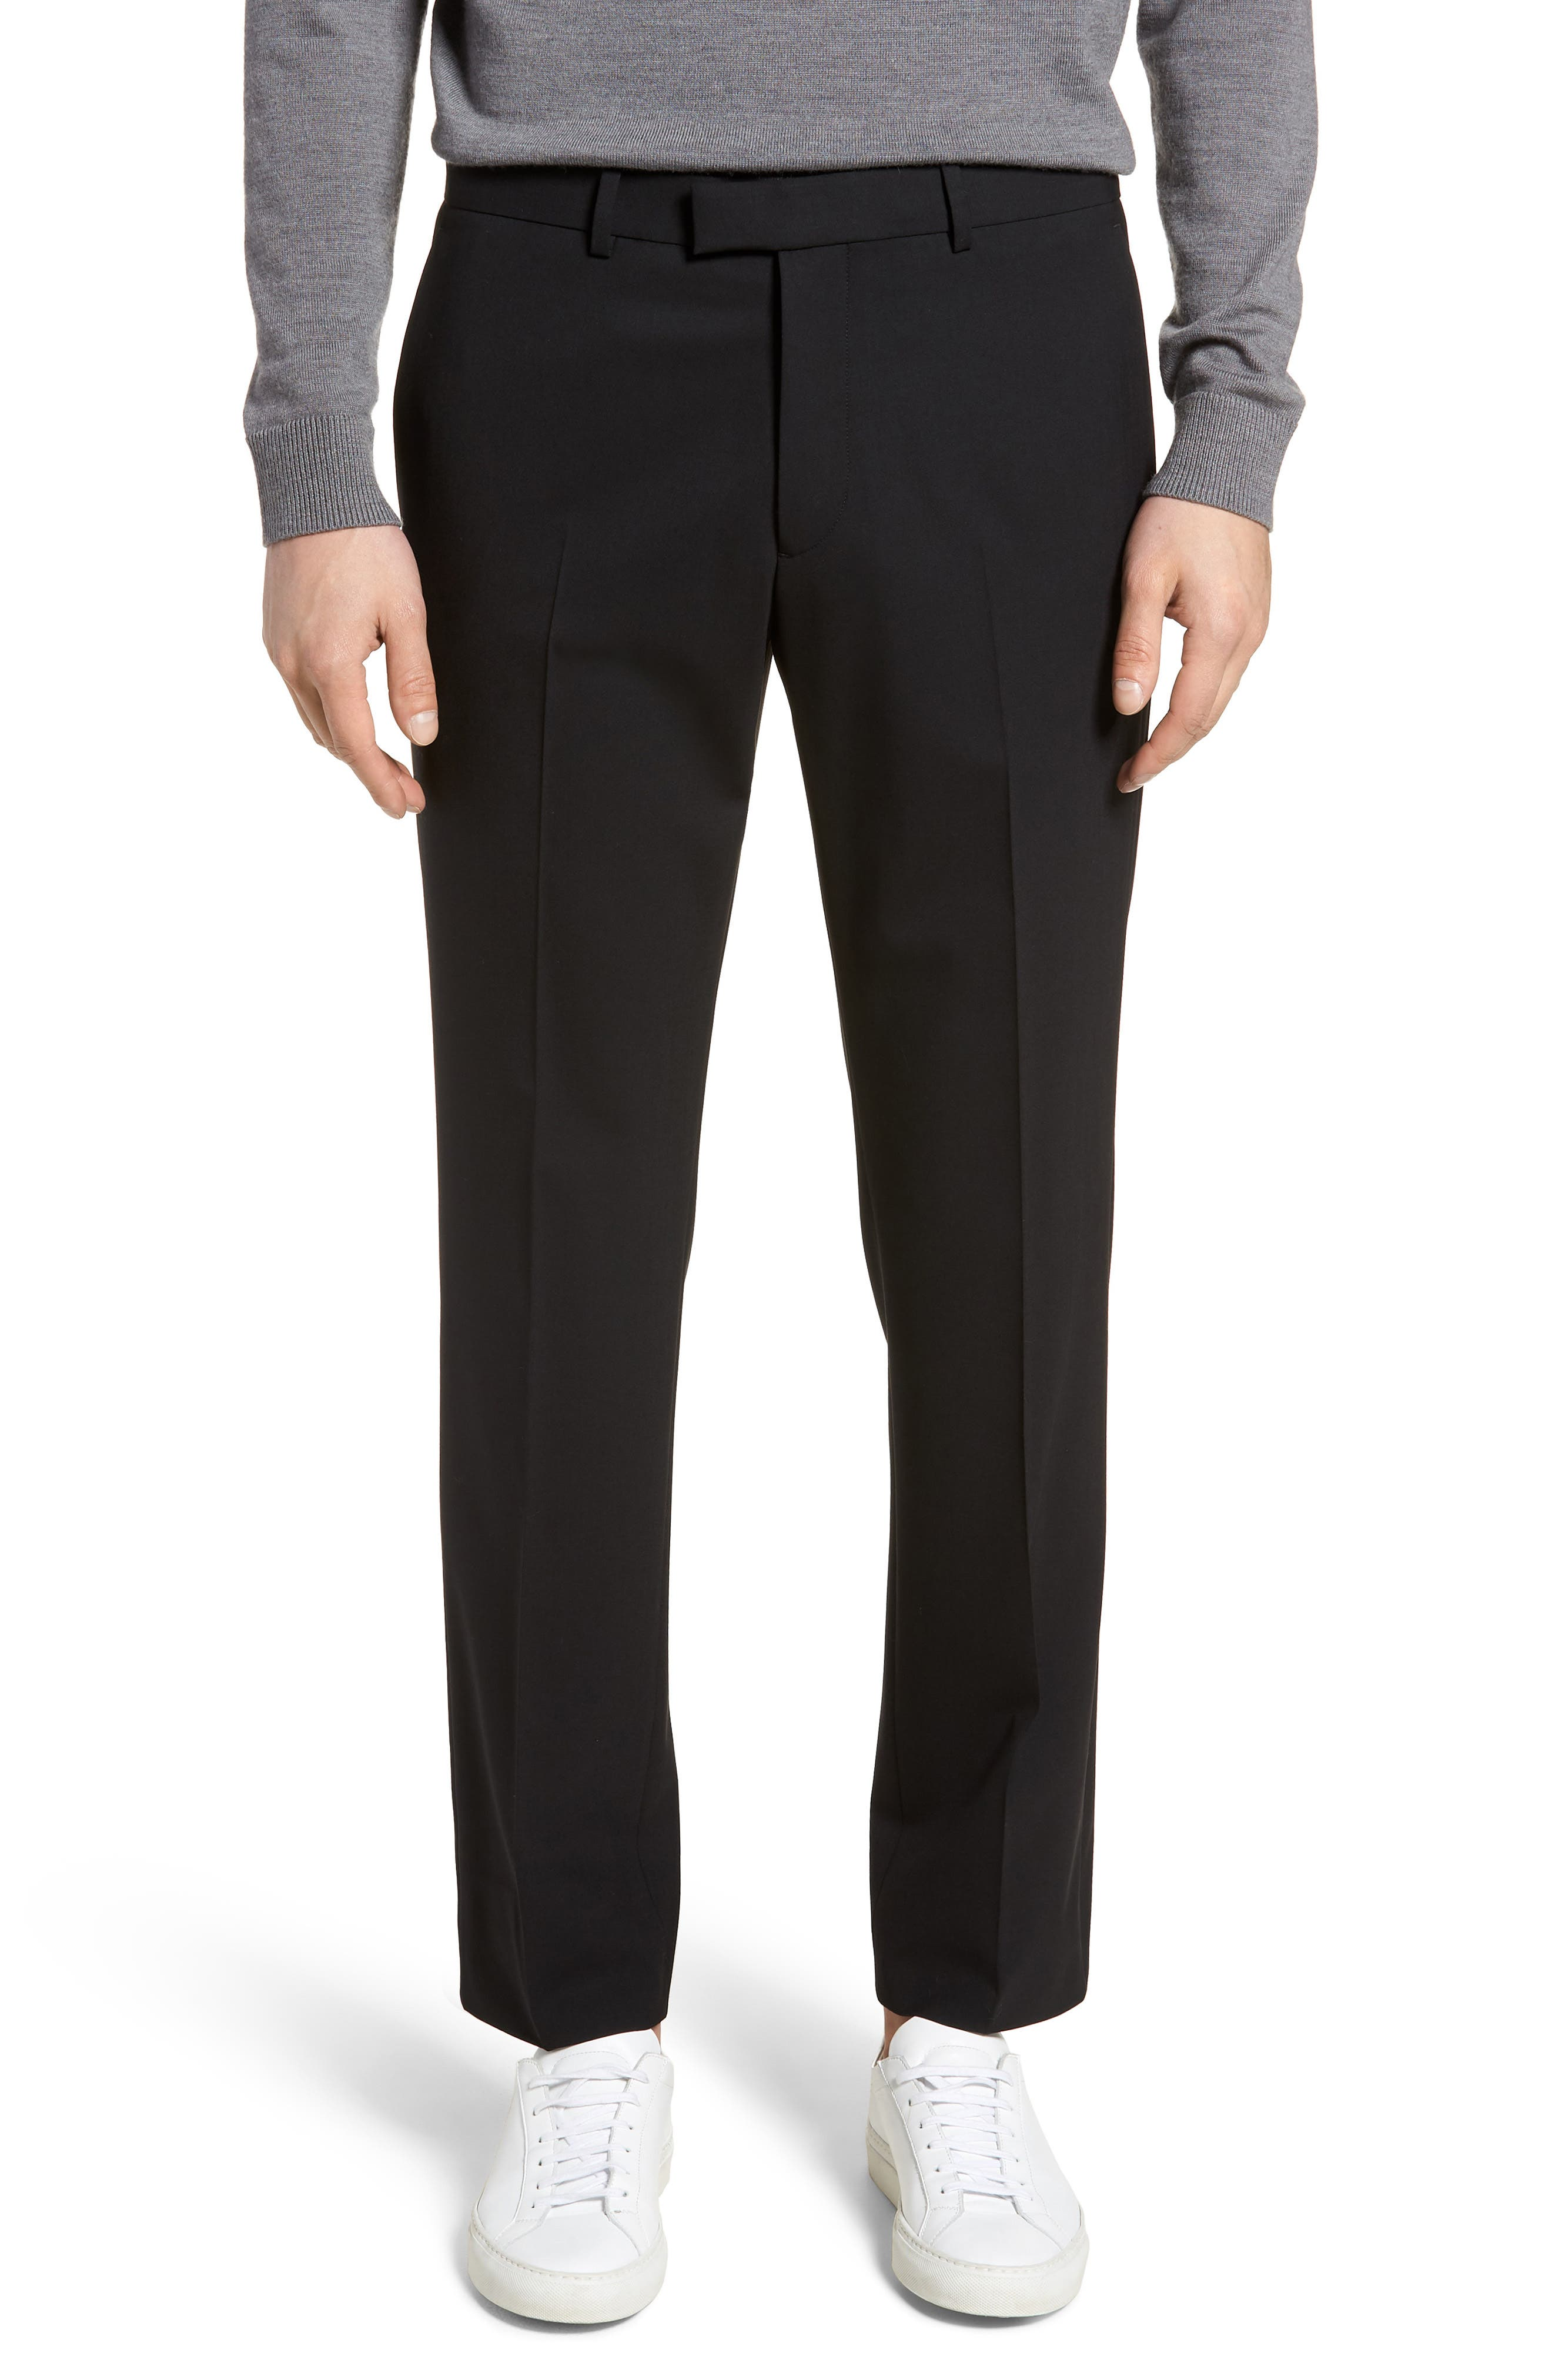 Marlo Flat Front Stretch Wool Pants,                             Main thumbnail 1, color,                             001